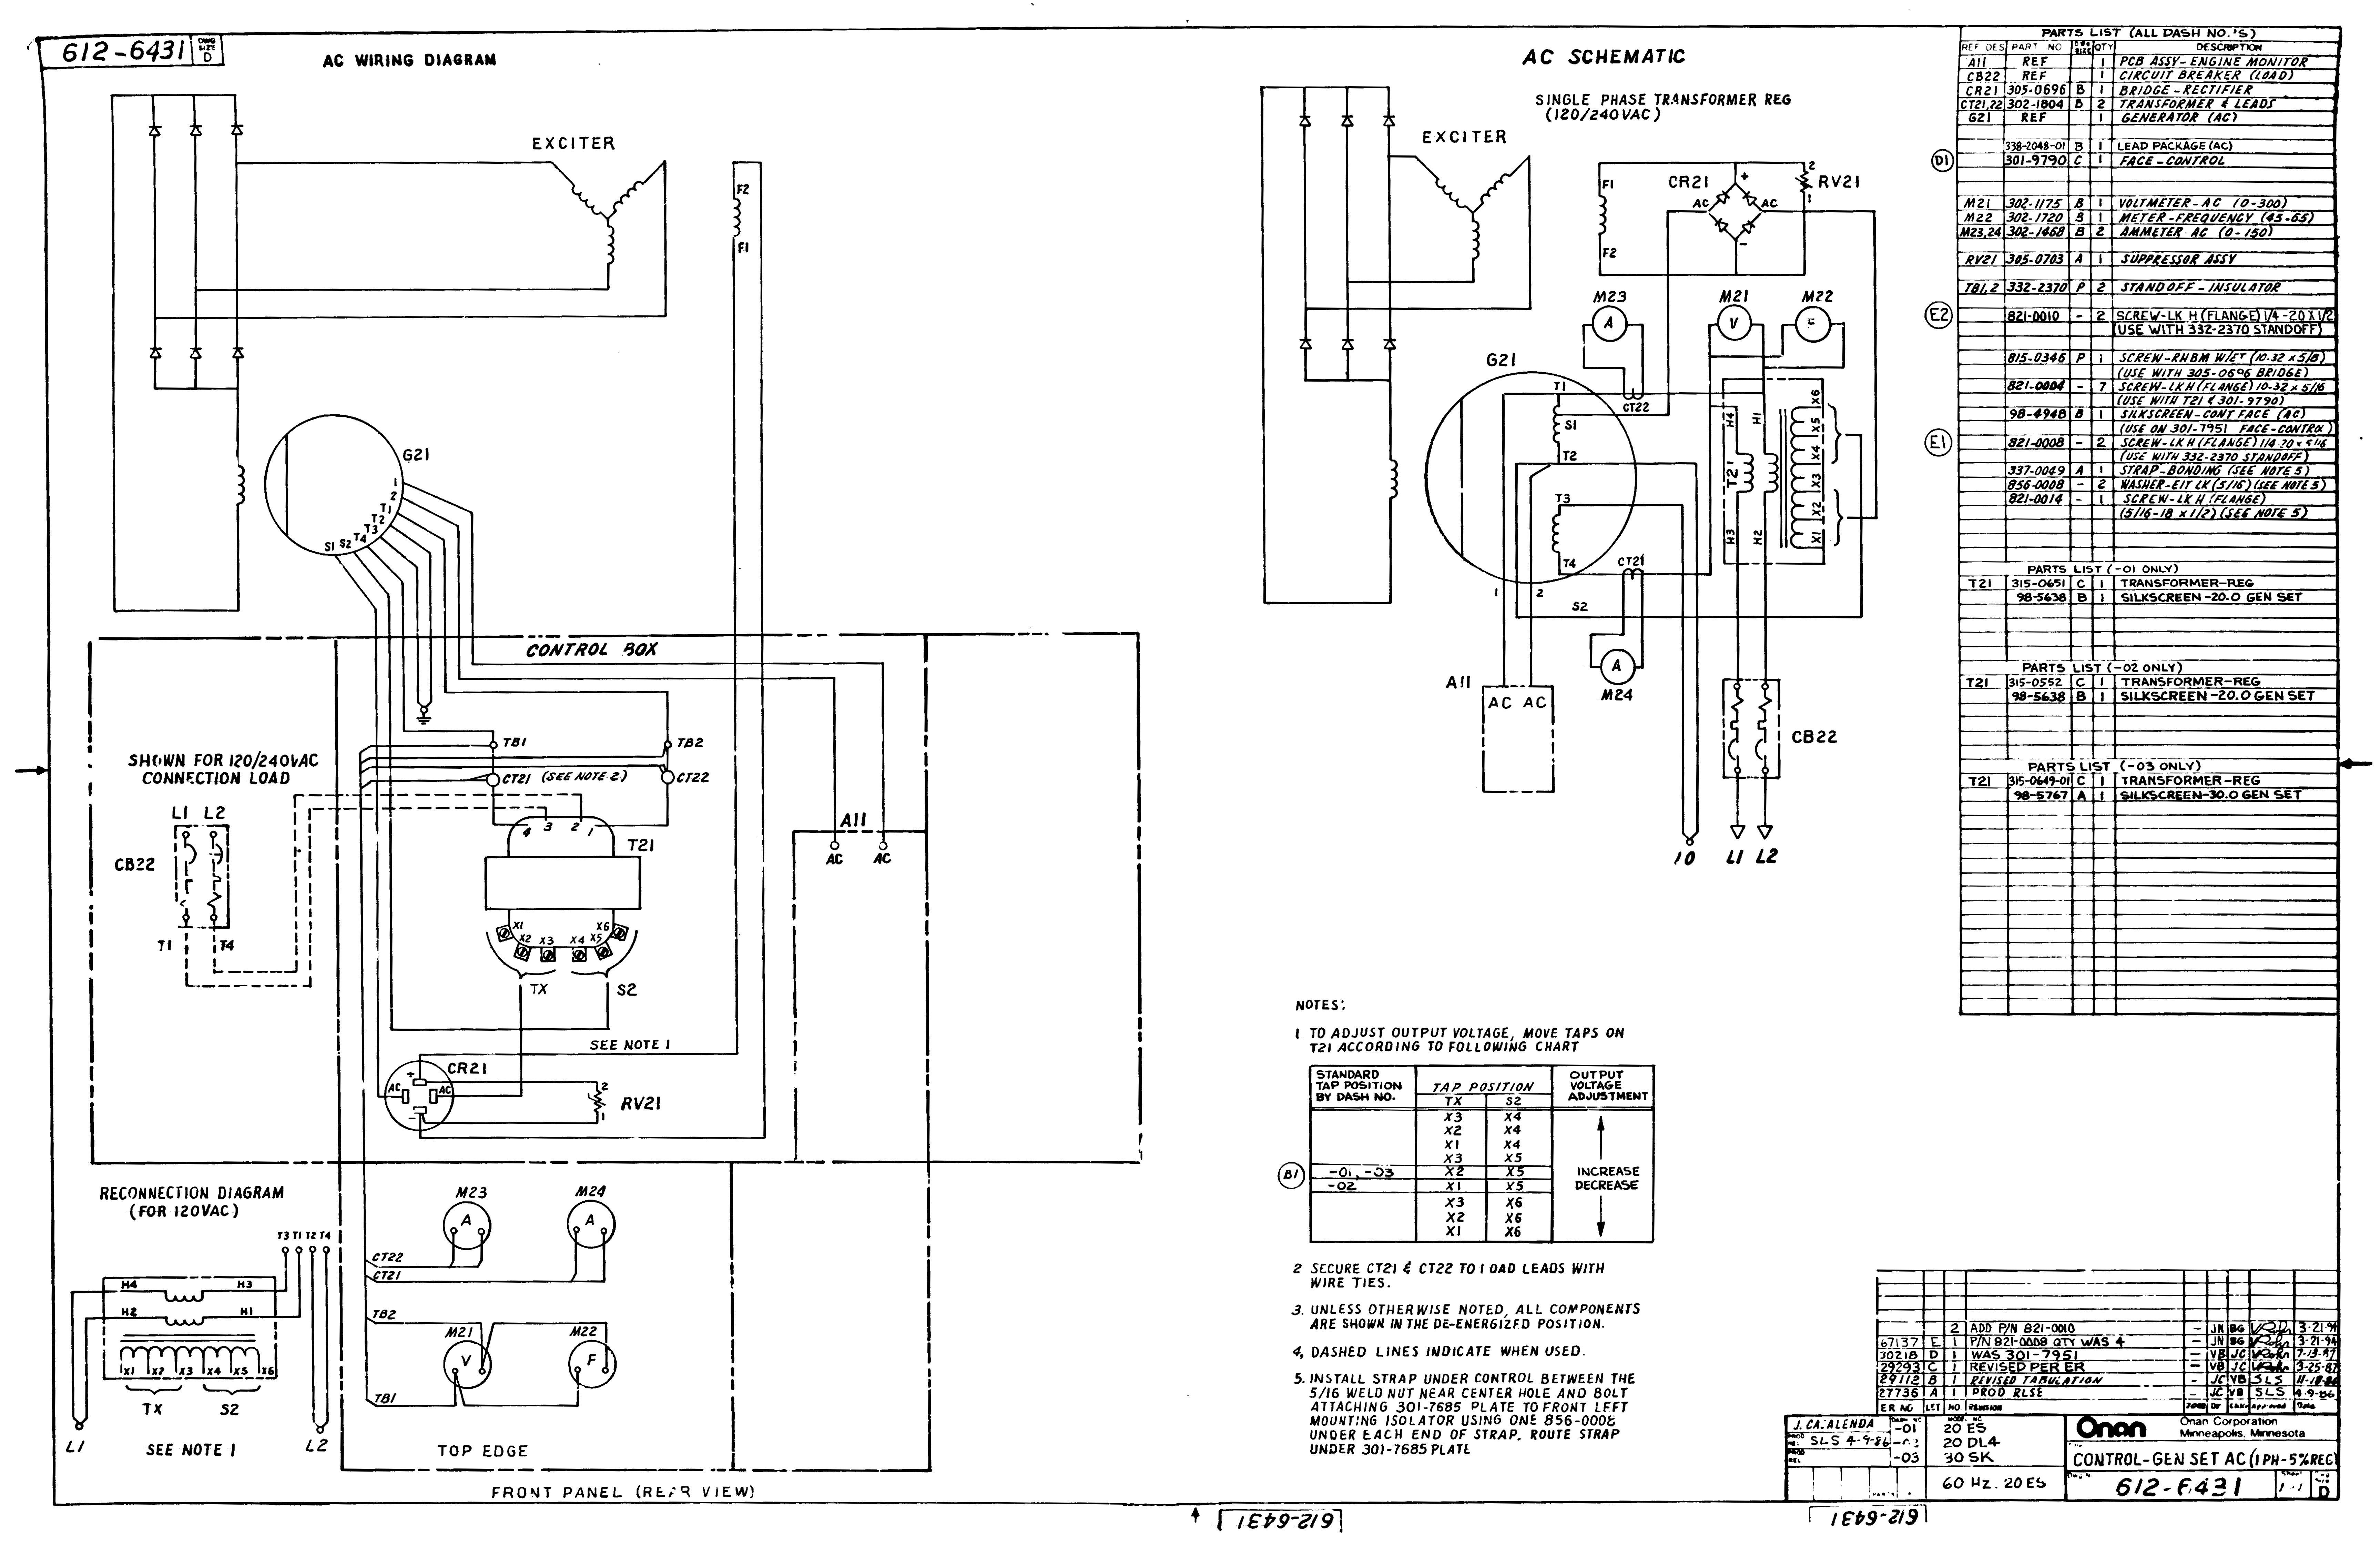 Elegant Rv Generator Wiring Diagram In